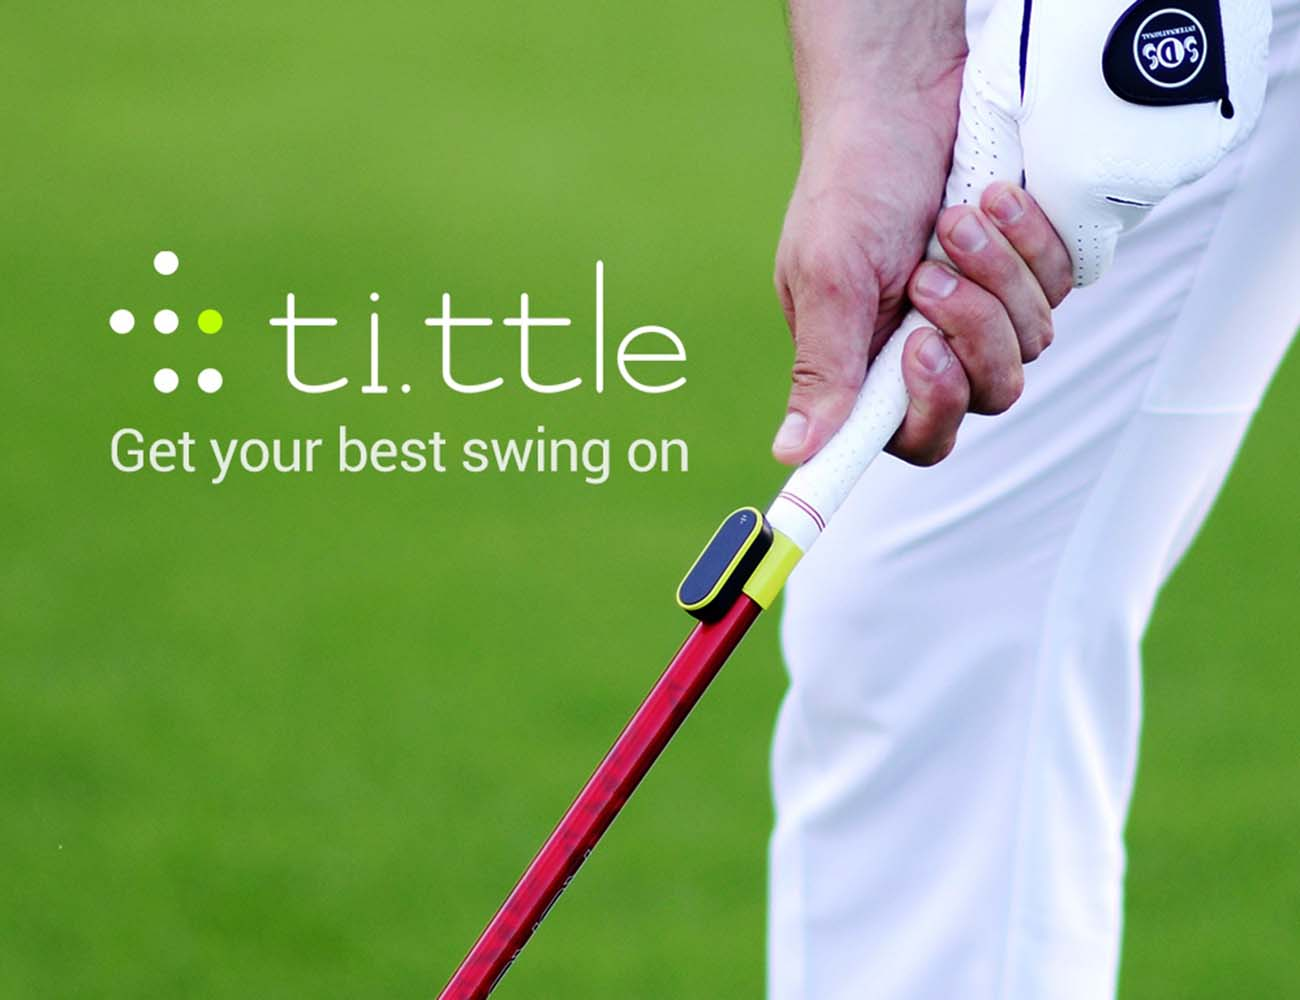 The Ultimate Golf Swing Analyzer & e-Caddie tittle